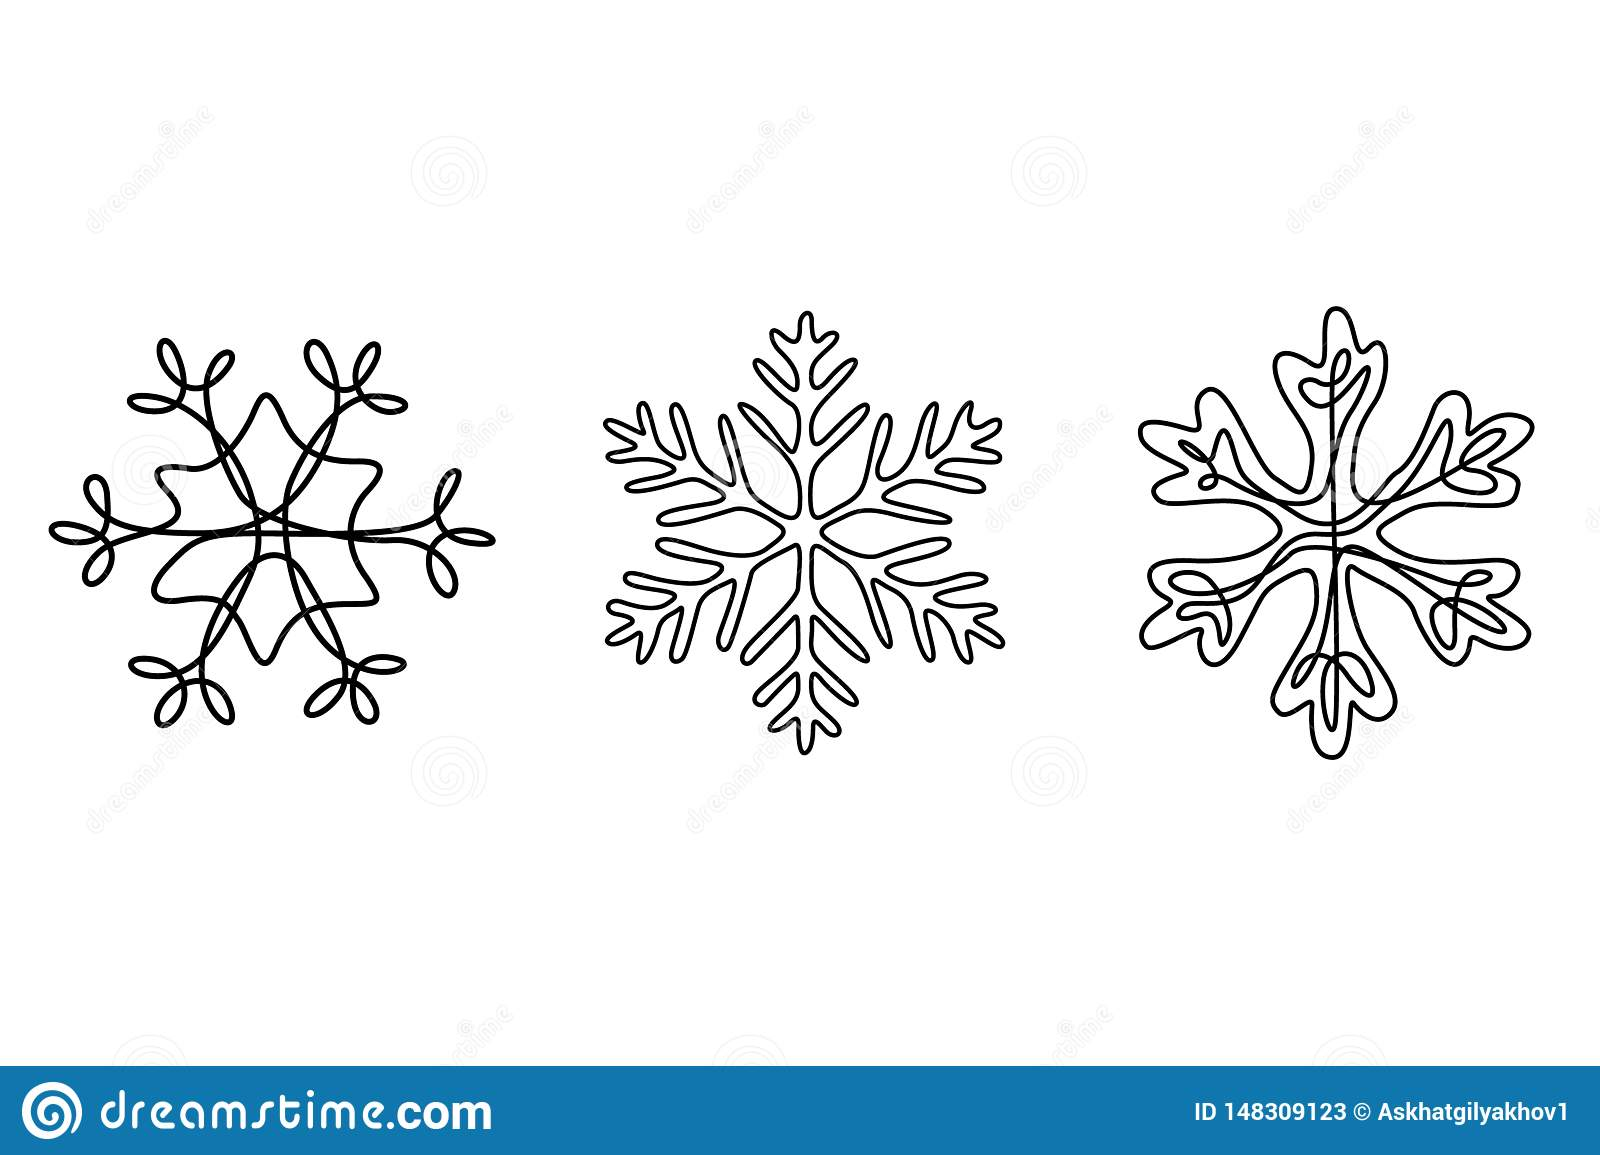 Continuous line drawing set of snowflakes, winter theme.